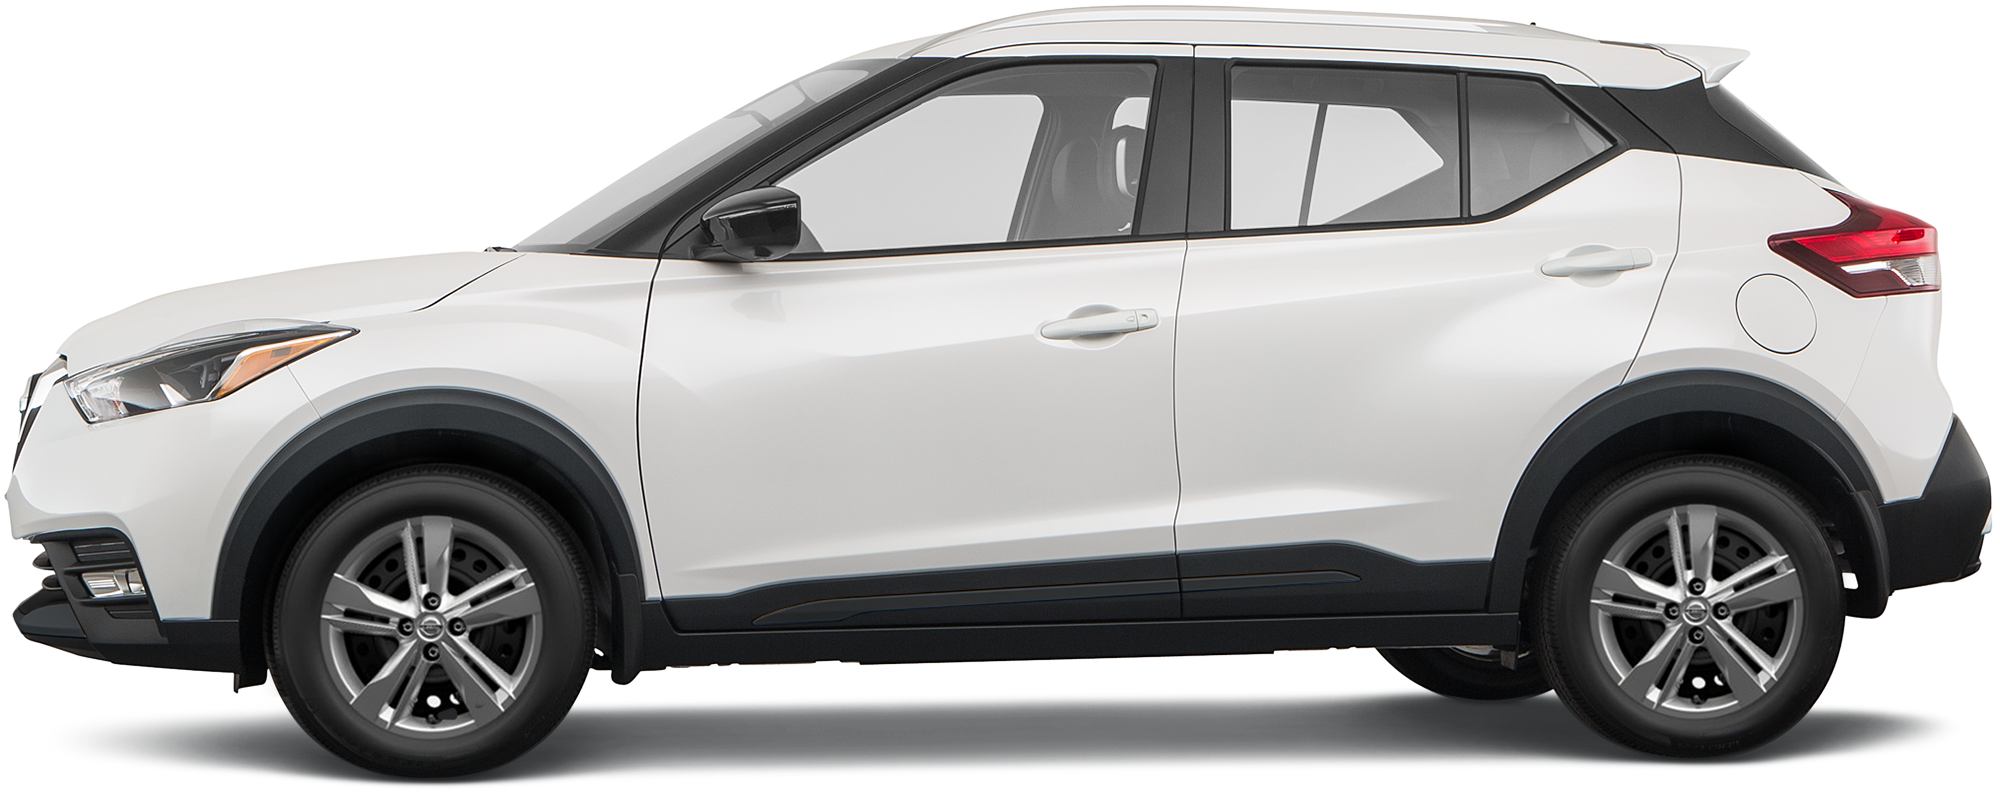 http://images.dealer.com/ddc/vehicles/2020/Nissan/Kicks/SUV/trim_S_760796/perspective/side-left/2020_24.png